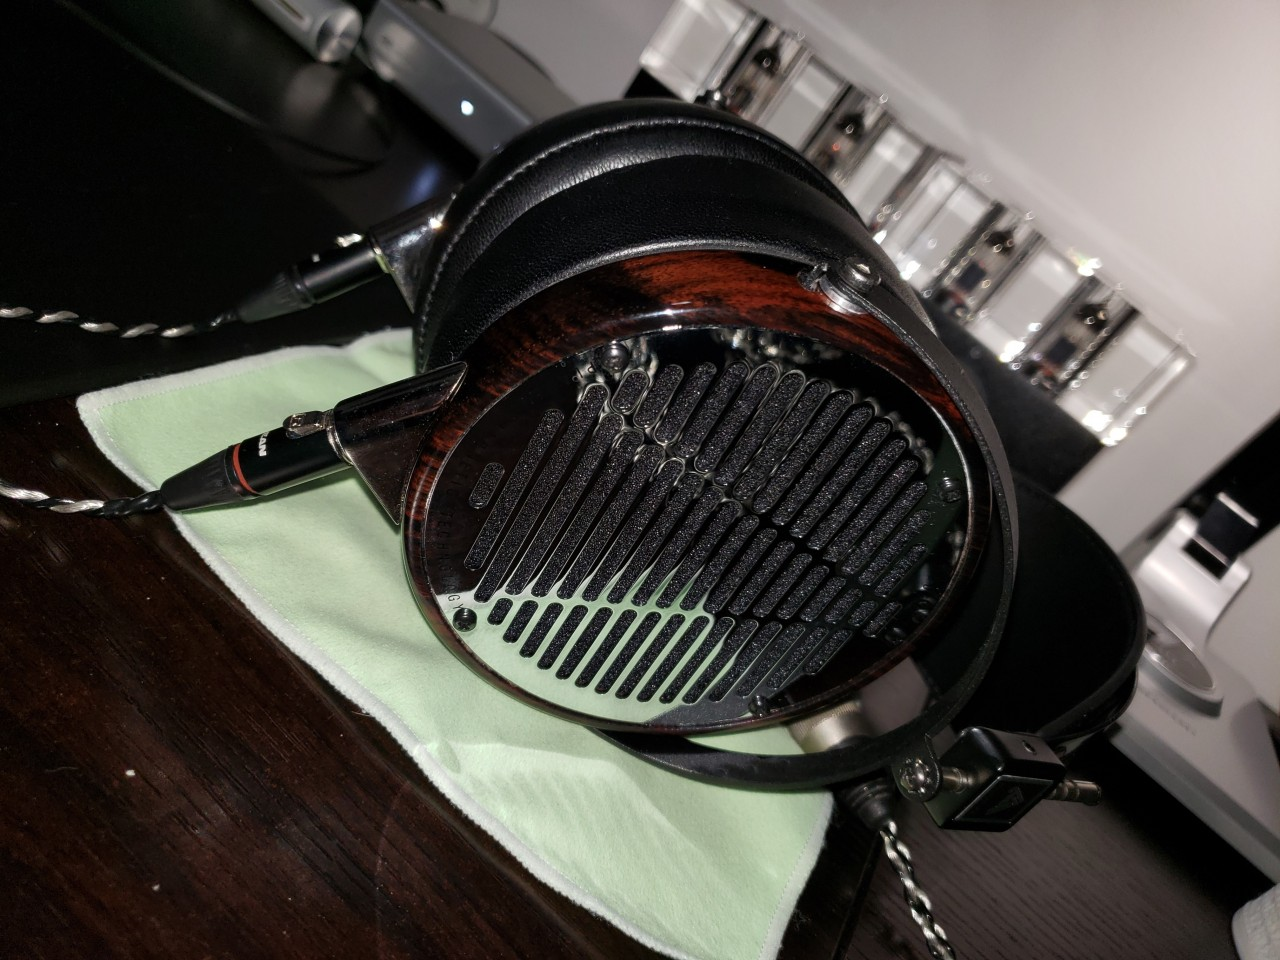 LCD-4 .. Simply beautiful .. had got rid of them, before I had the means to drive them properly.